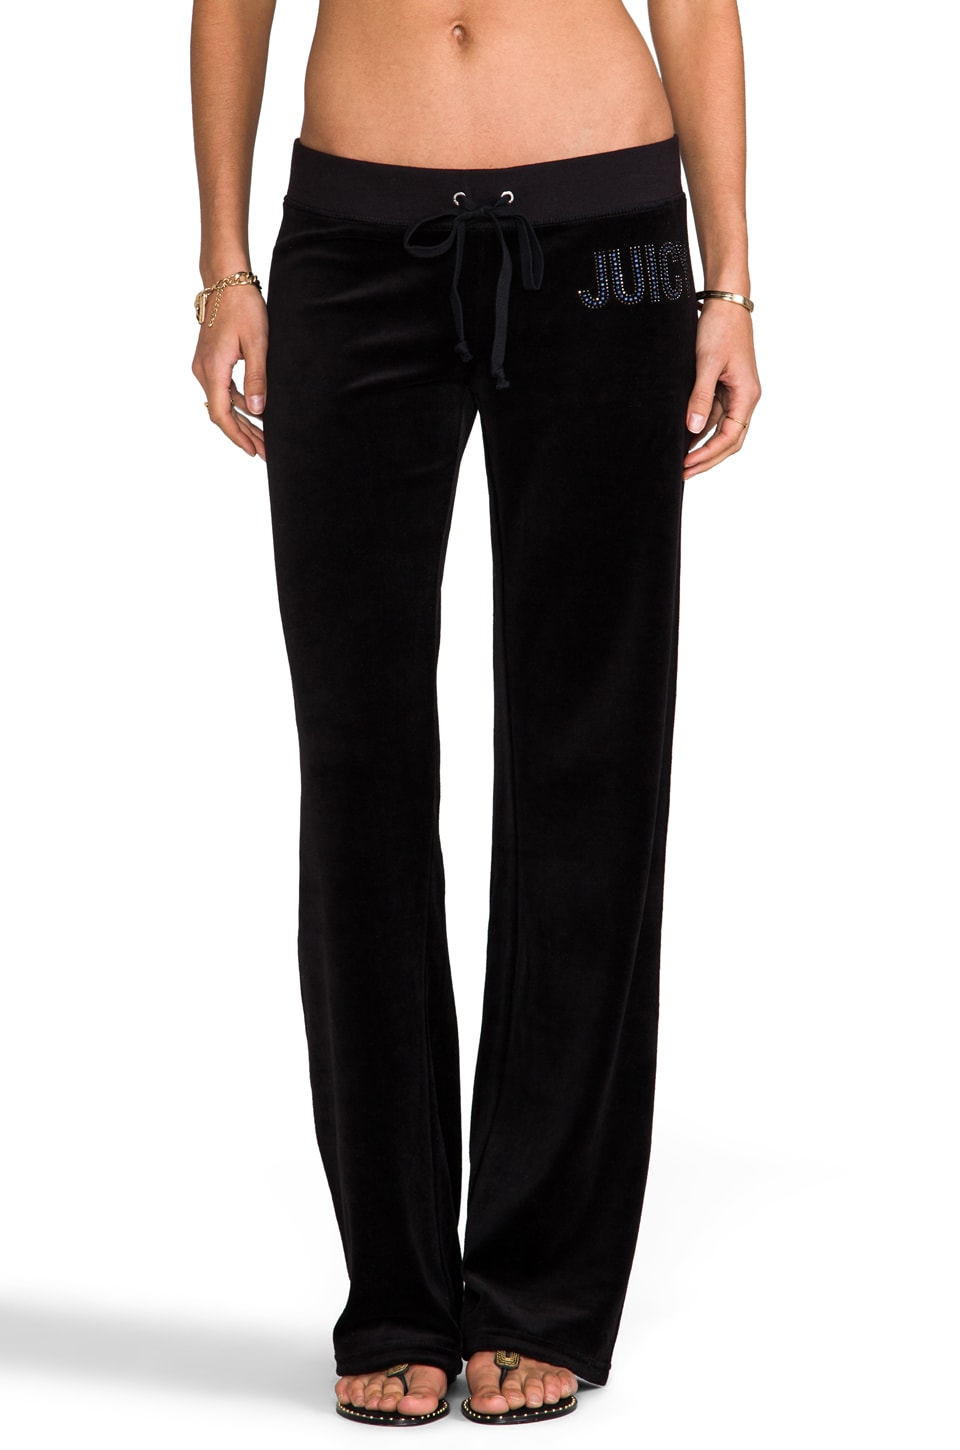 Juicy Couture Jewles Velour Pant in Black